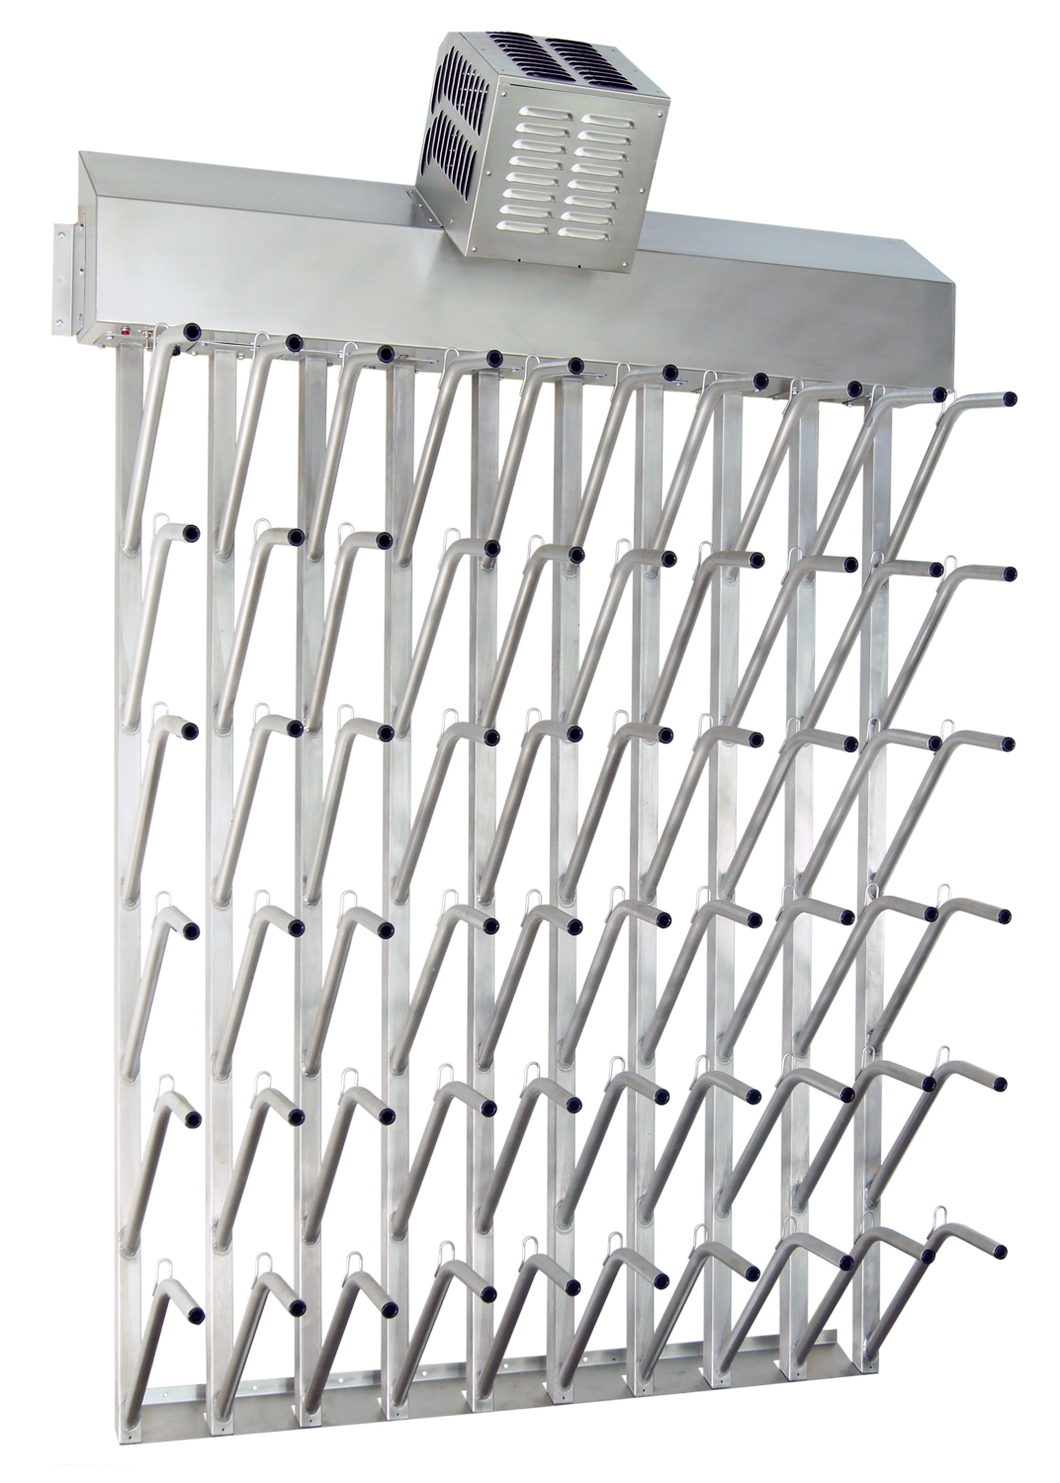 Food Processing Boot Dryer, Wall Mount, Stainless, 30 pair (60 boots) Model: W30FG